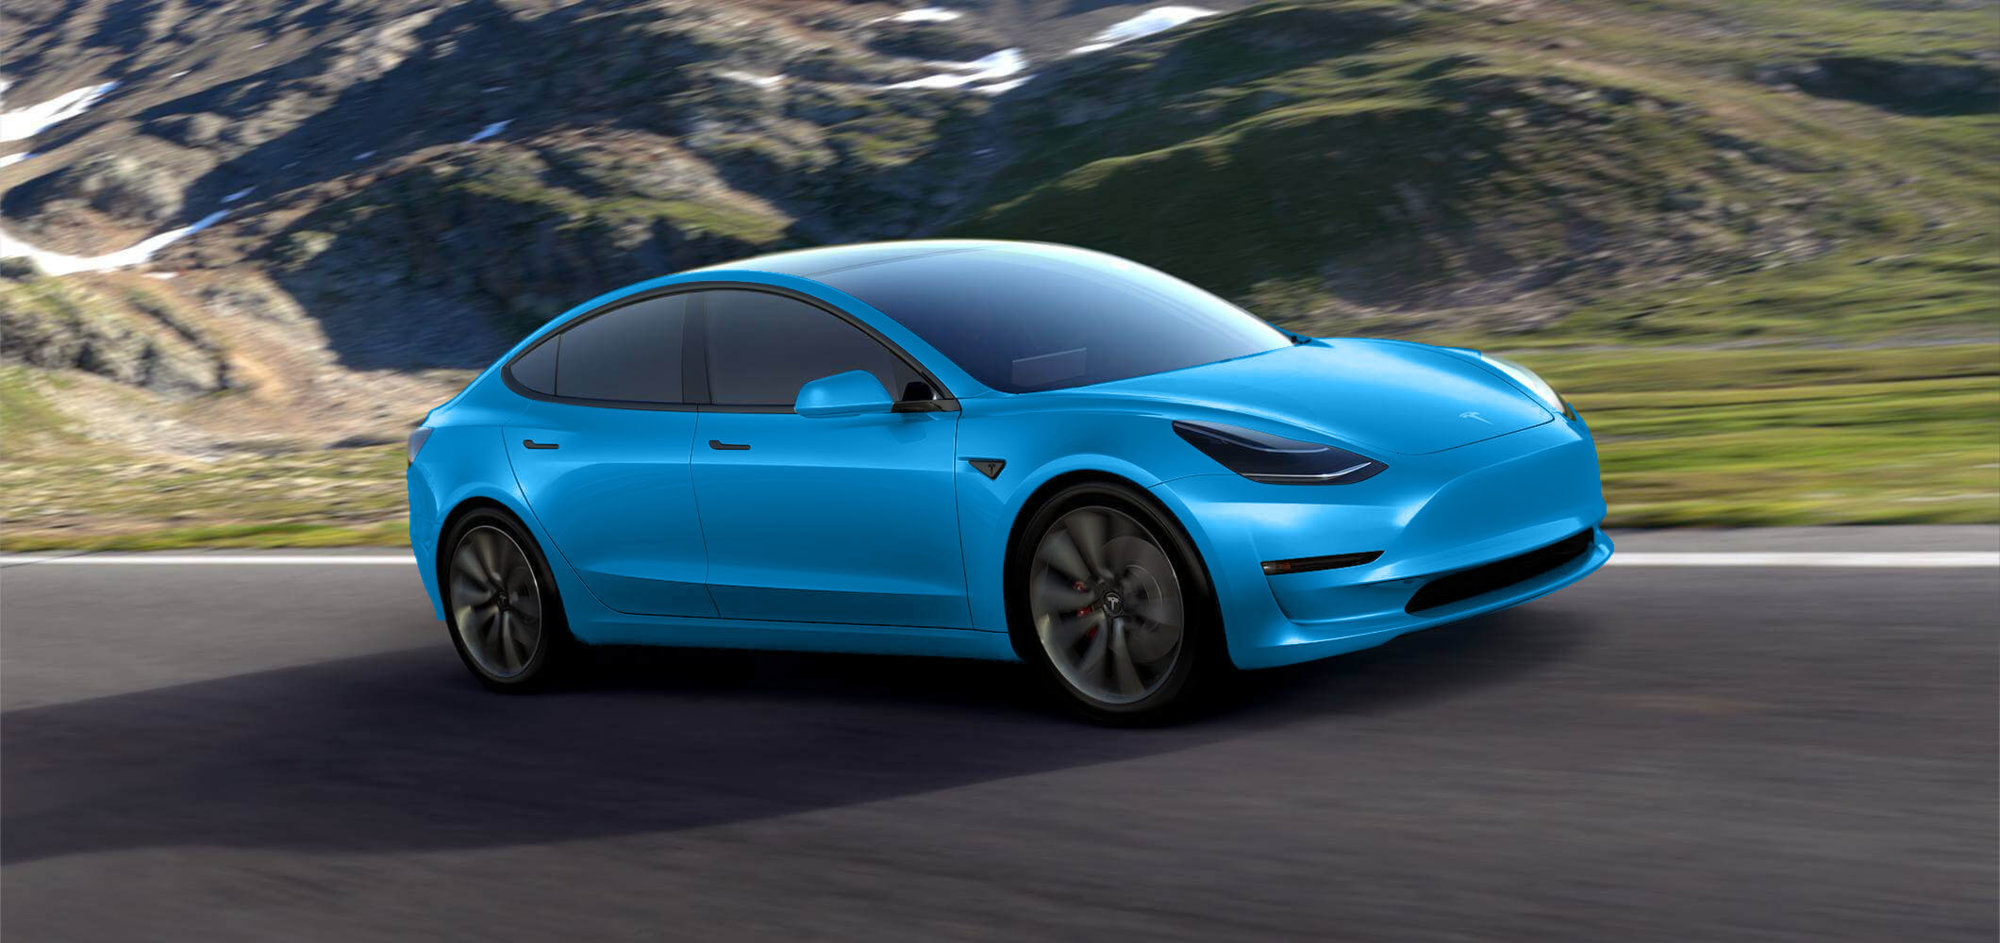 Car Apr Calculator >> Tesla Model 3 Gets Rendered in Dozens of Colors, Looks Good in All of Them - autoevolution